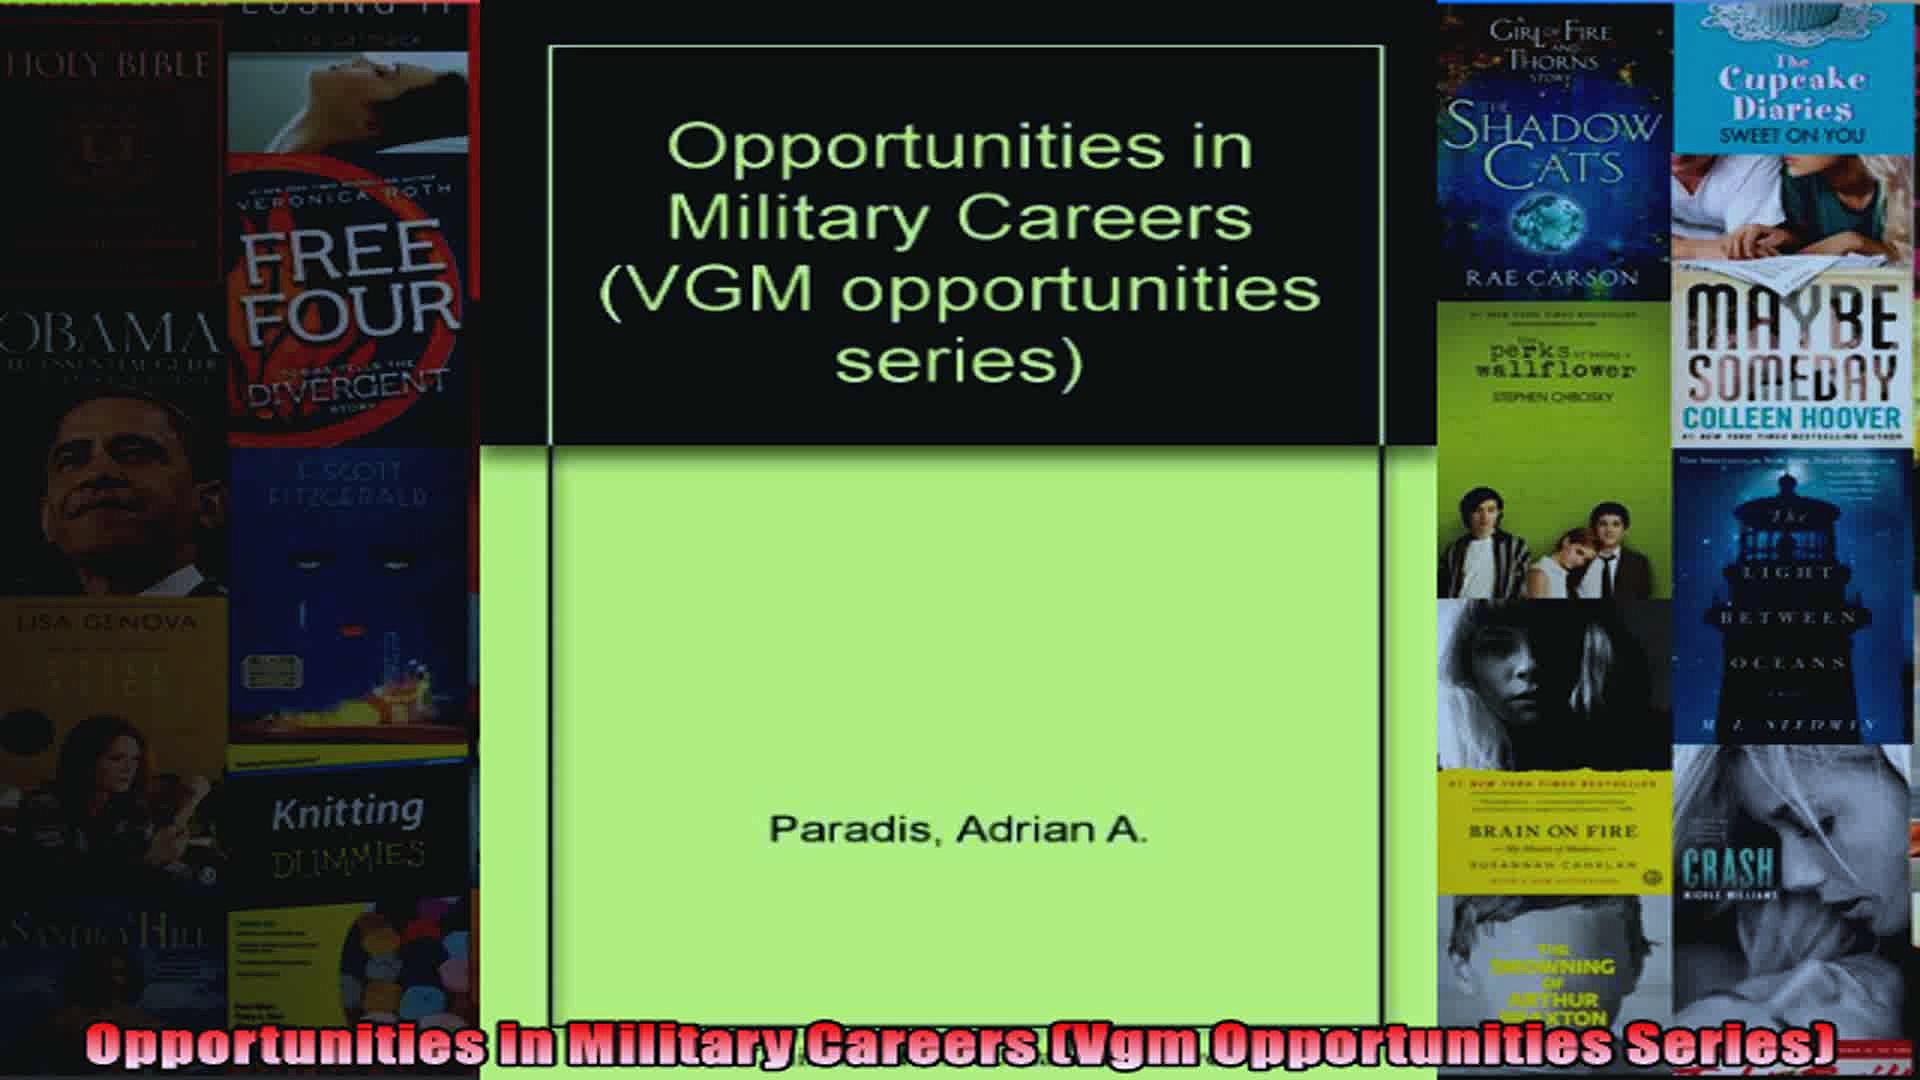 Opportunities in Military Careers Vgm Opportunities Series